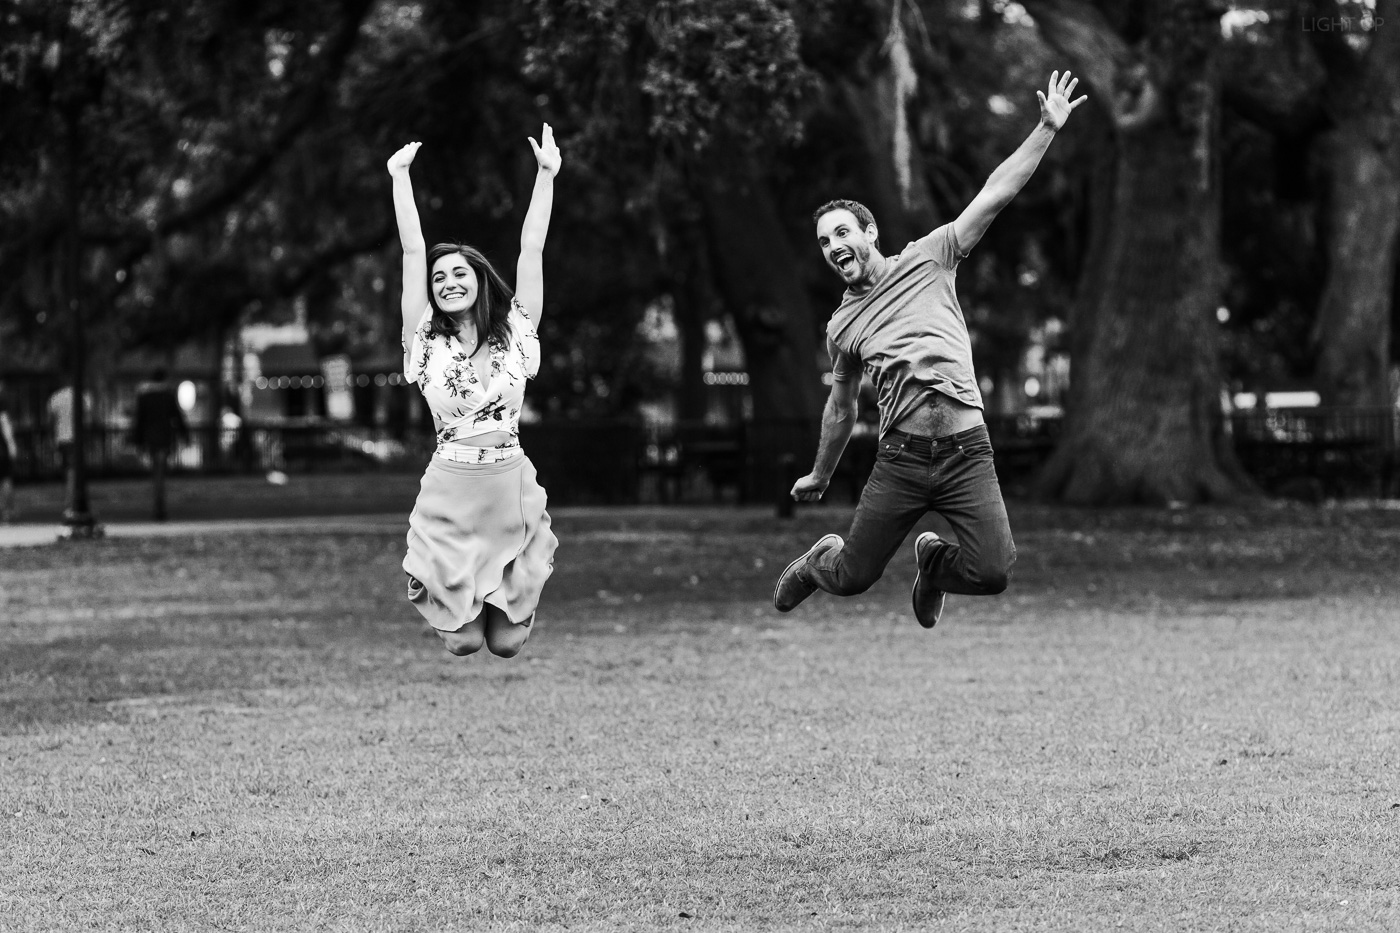 fun-engagement-photo-ideas-1.jpg